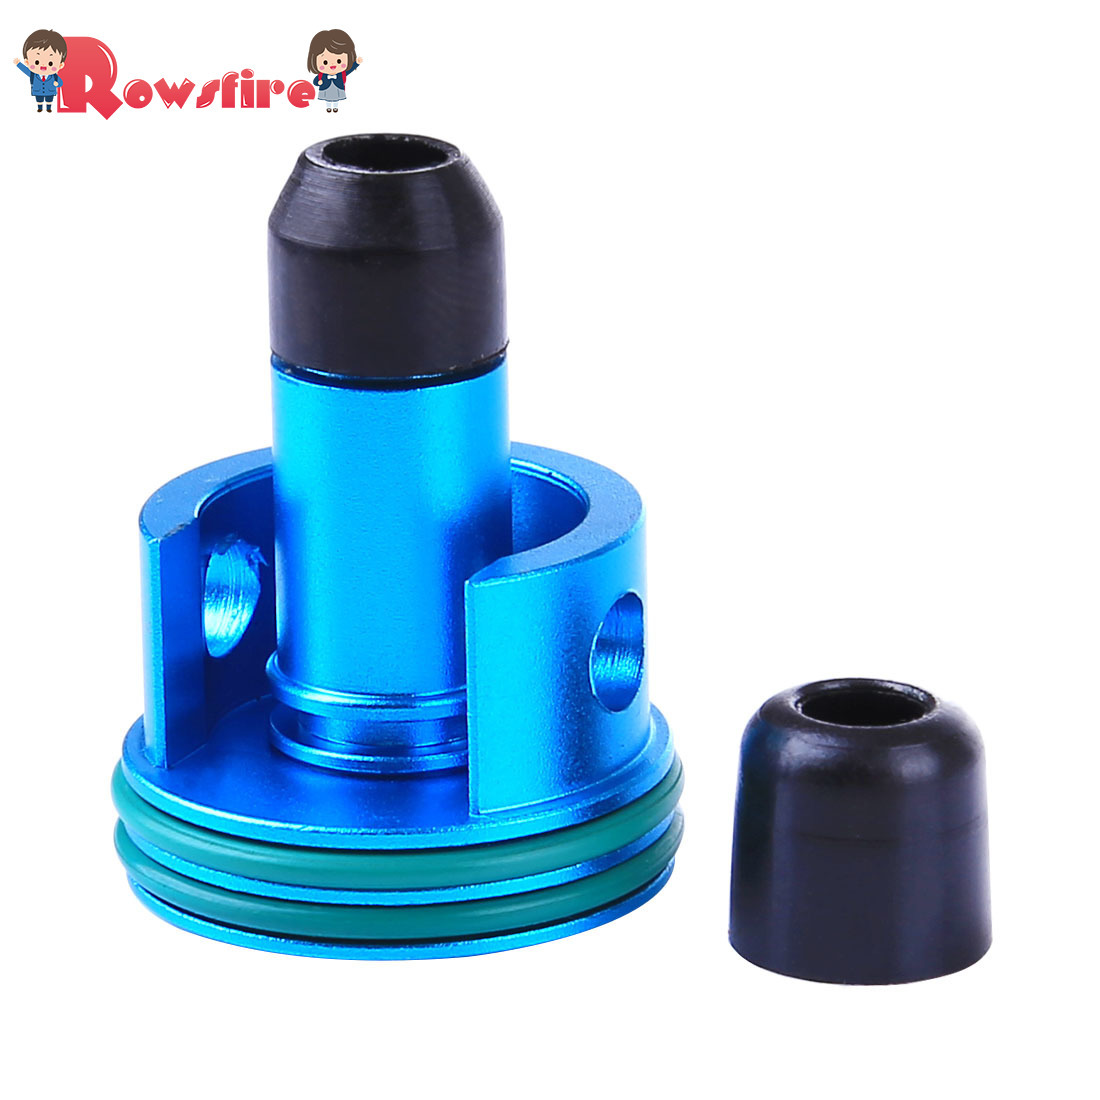 Metal Air Cylinder Head And Inner O Ring Air Seal Nozzle For Jingji SLR/RX AK47 Water Gel Beads Blaster - Blue